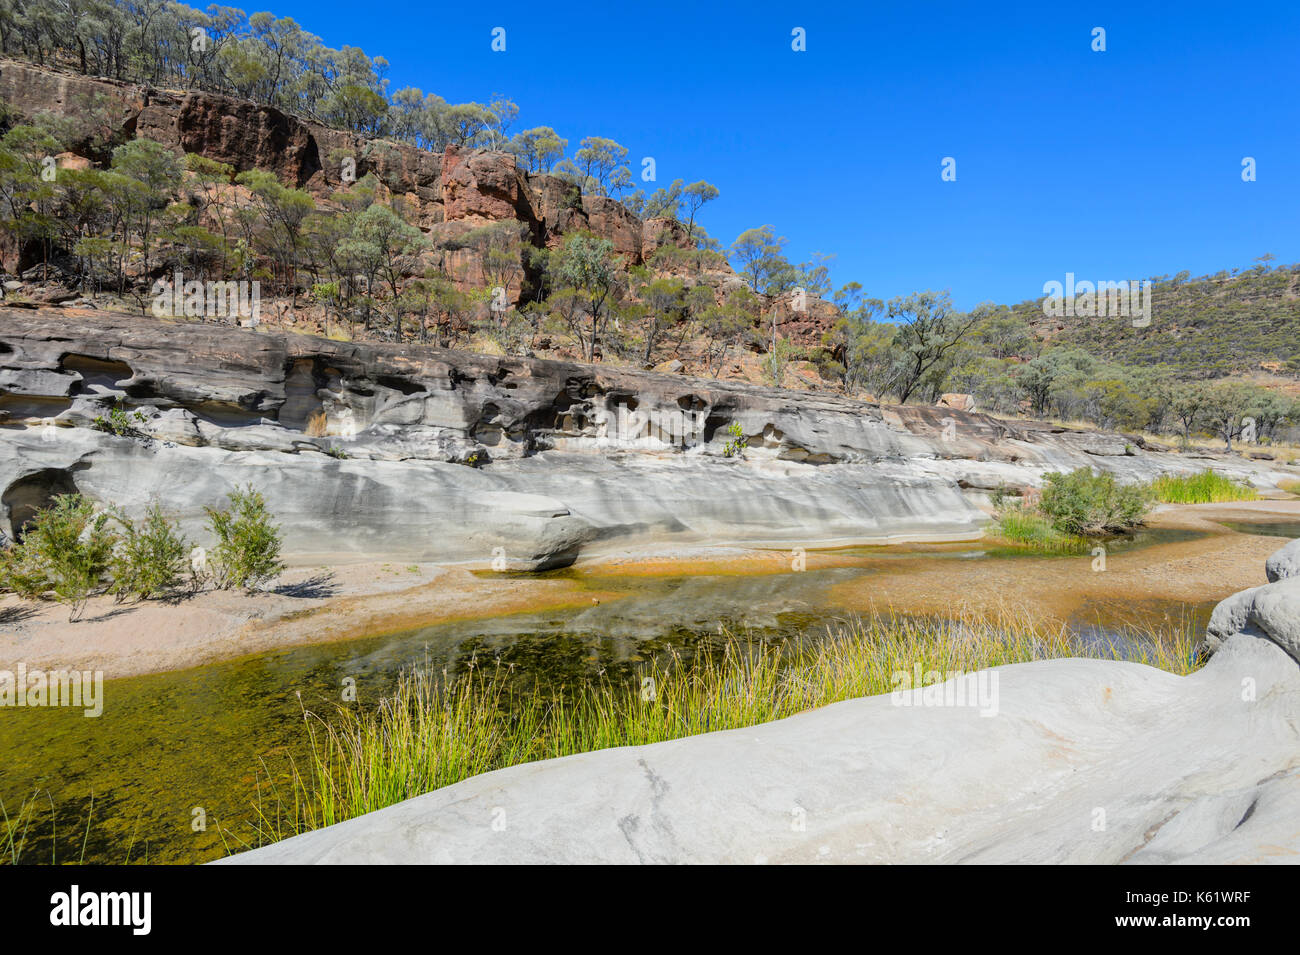 View of Porcupine Gorge National Park, Queensland, QLD, Australia - Stock Image